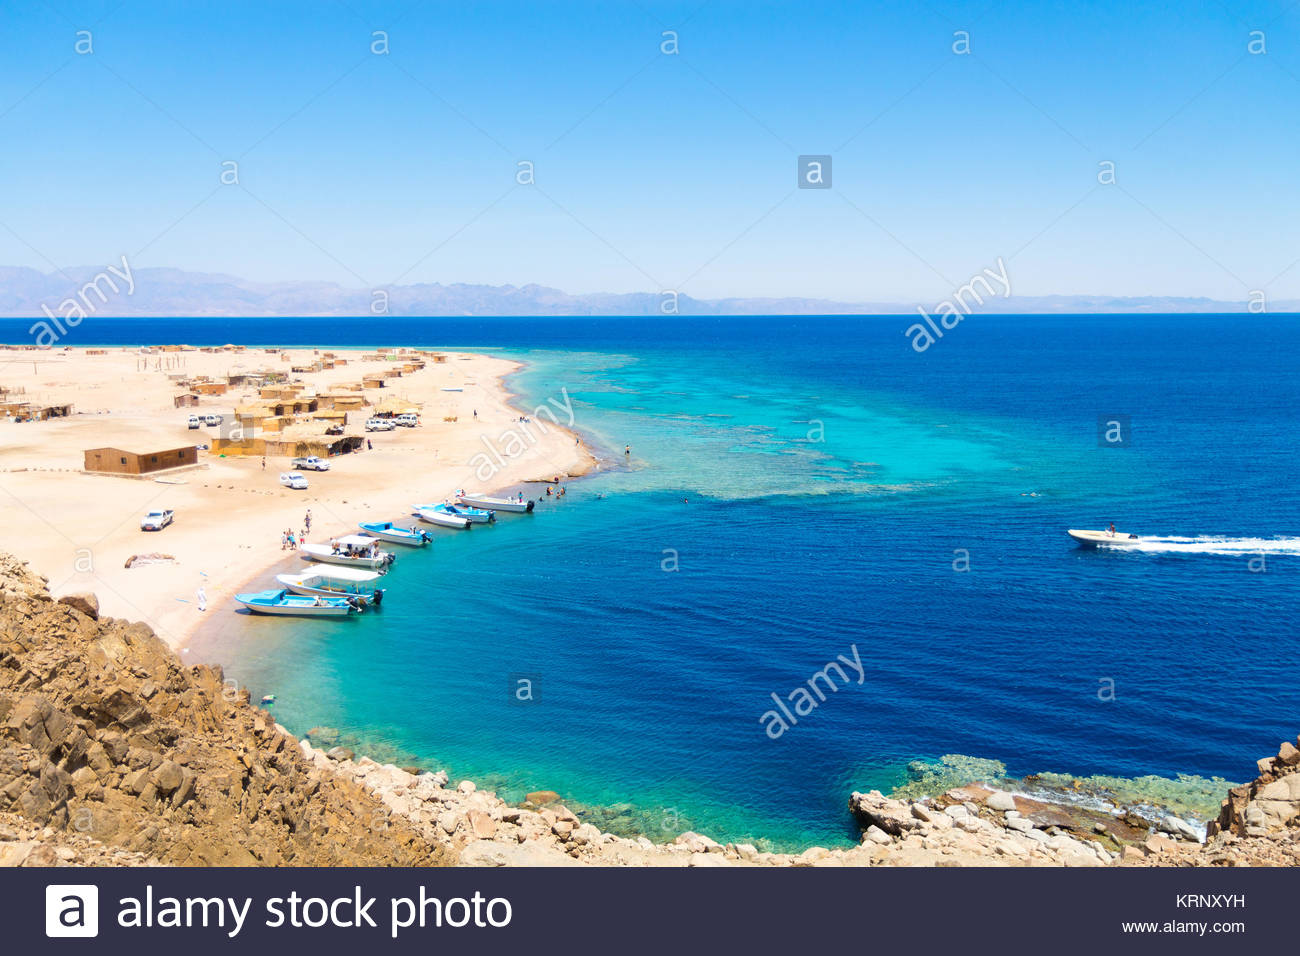 Ras Abu Galum near Dahab city, South Sinai, Egypt - Stock Image